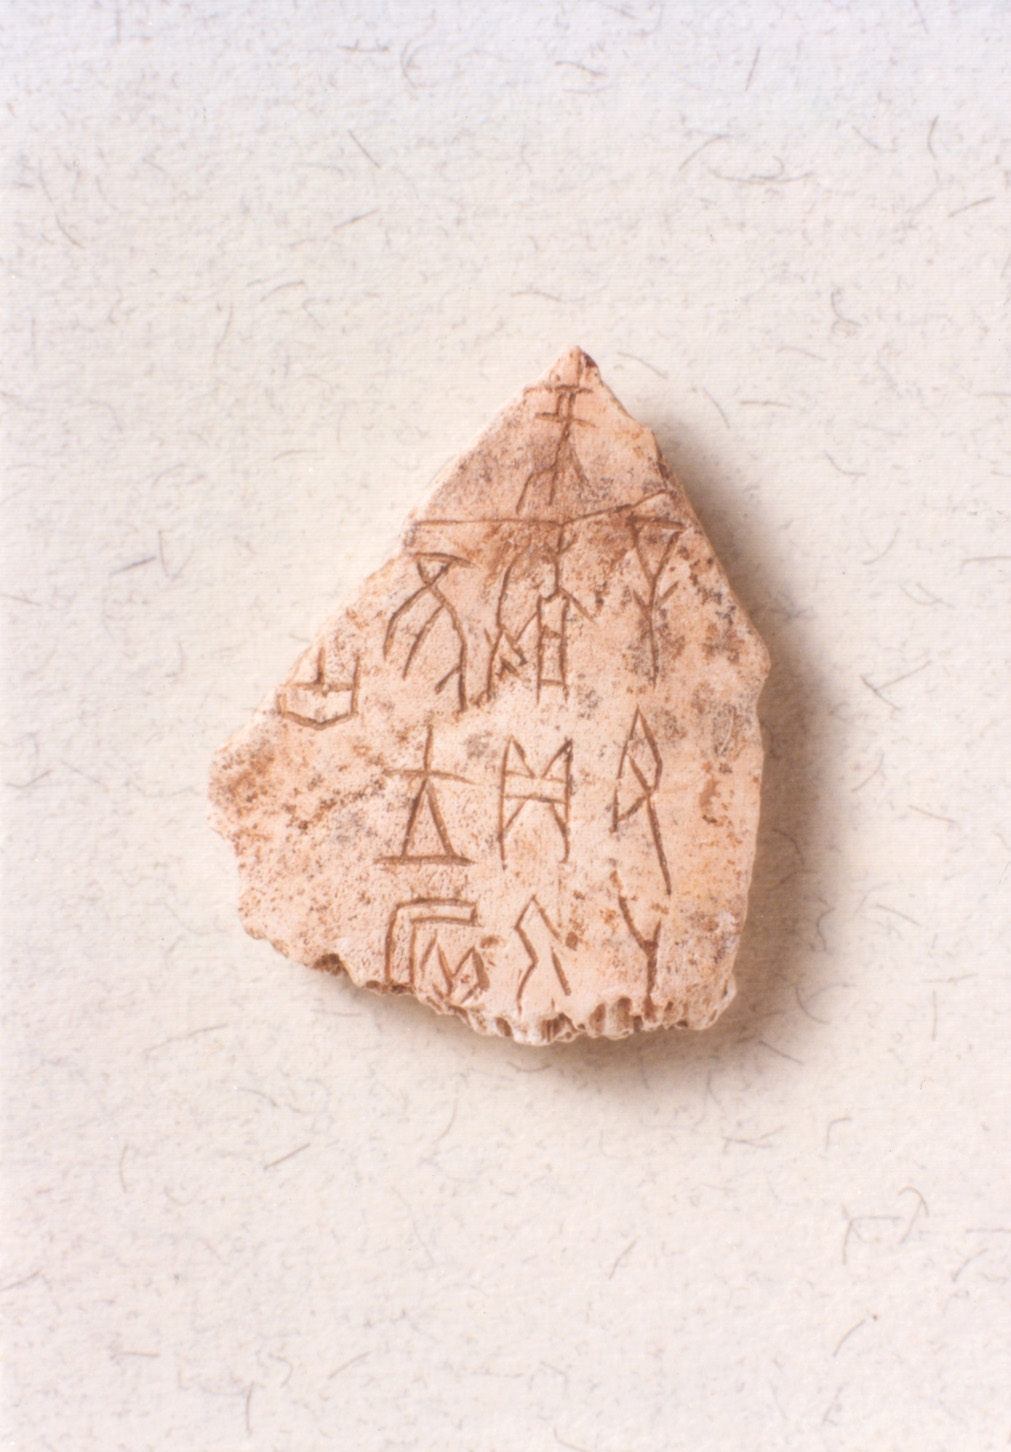 Oracle Bones Shang dynasty (ca. 1675-1029 BC) 56 pieces Collection of United College, CUHK